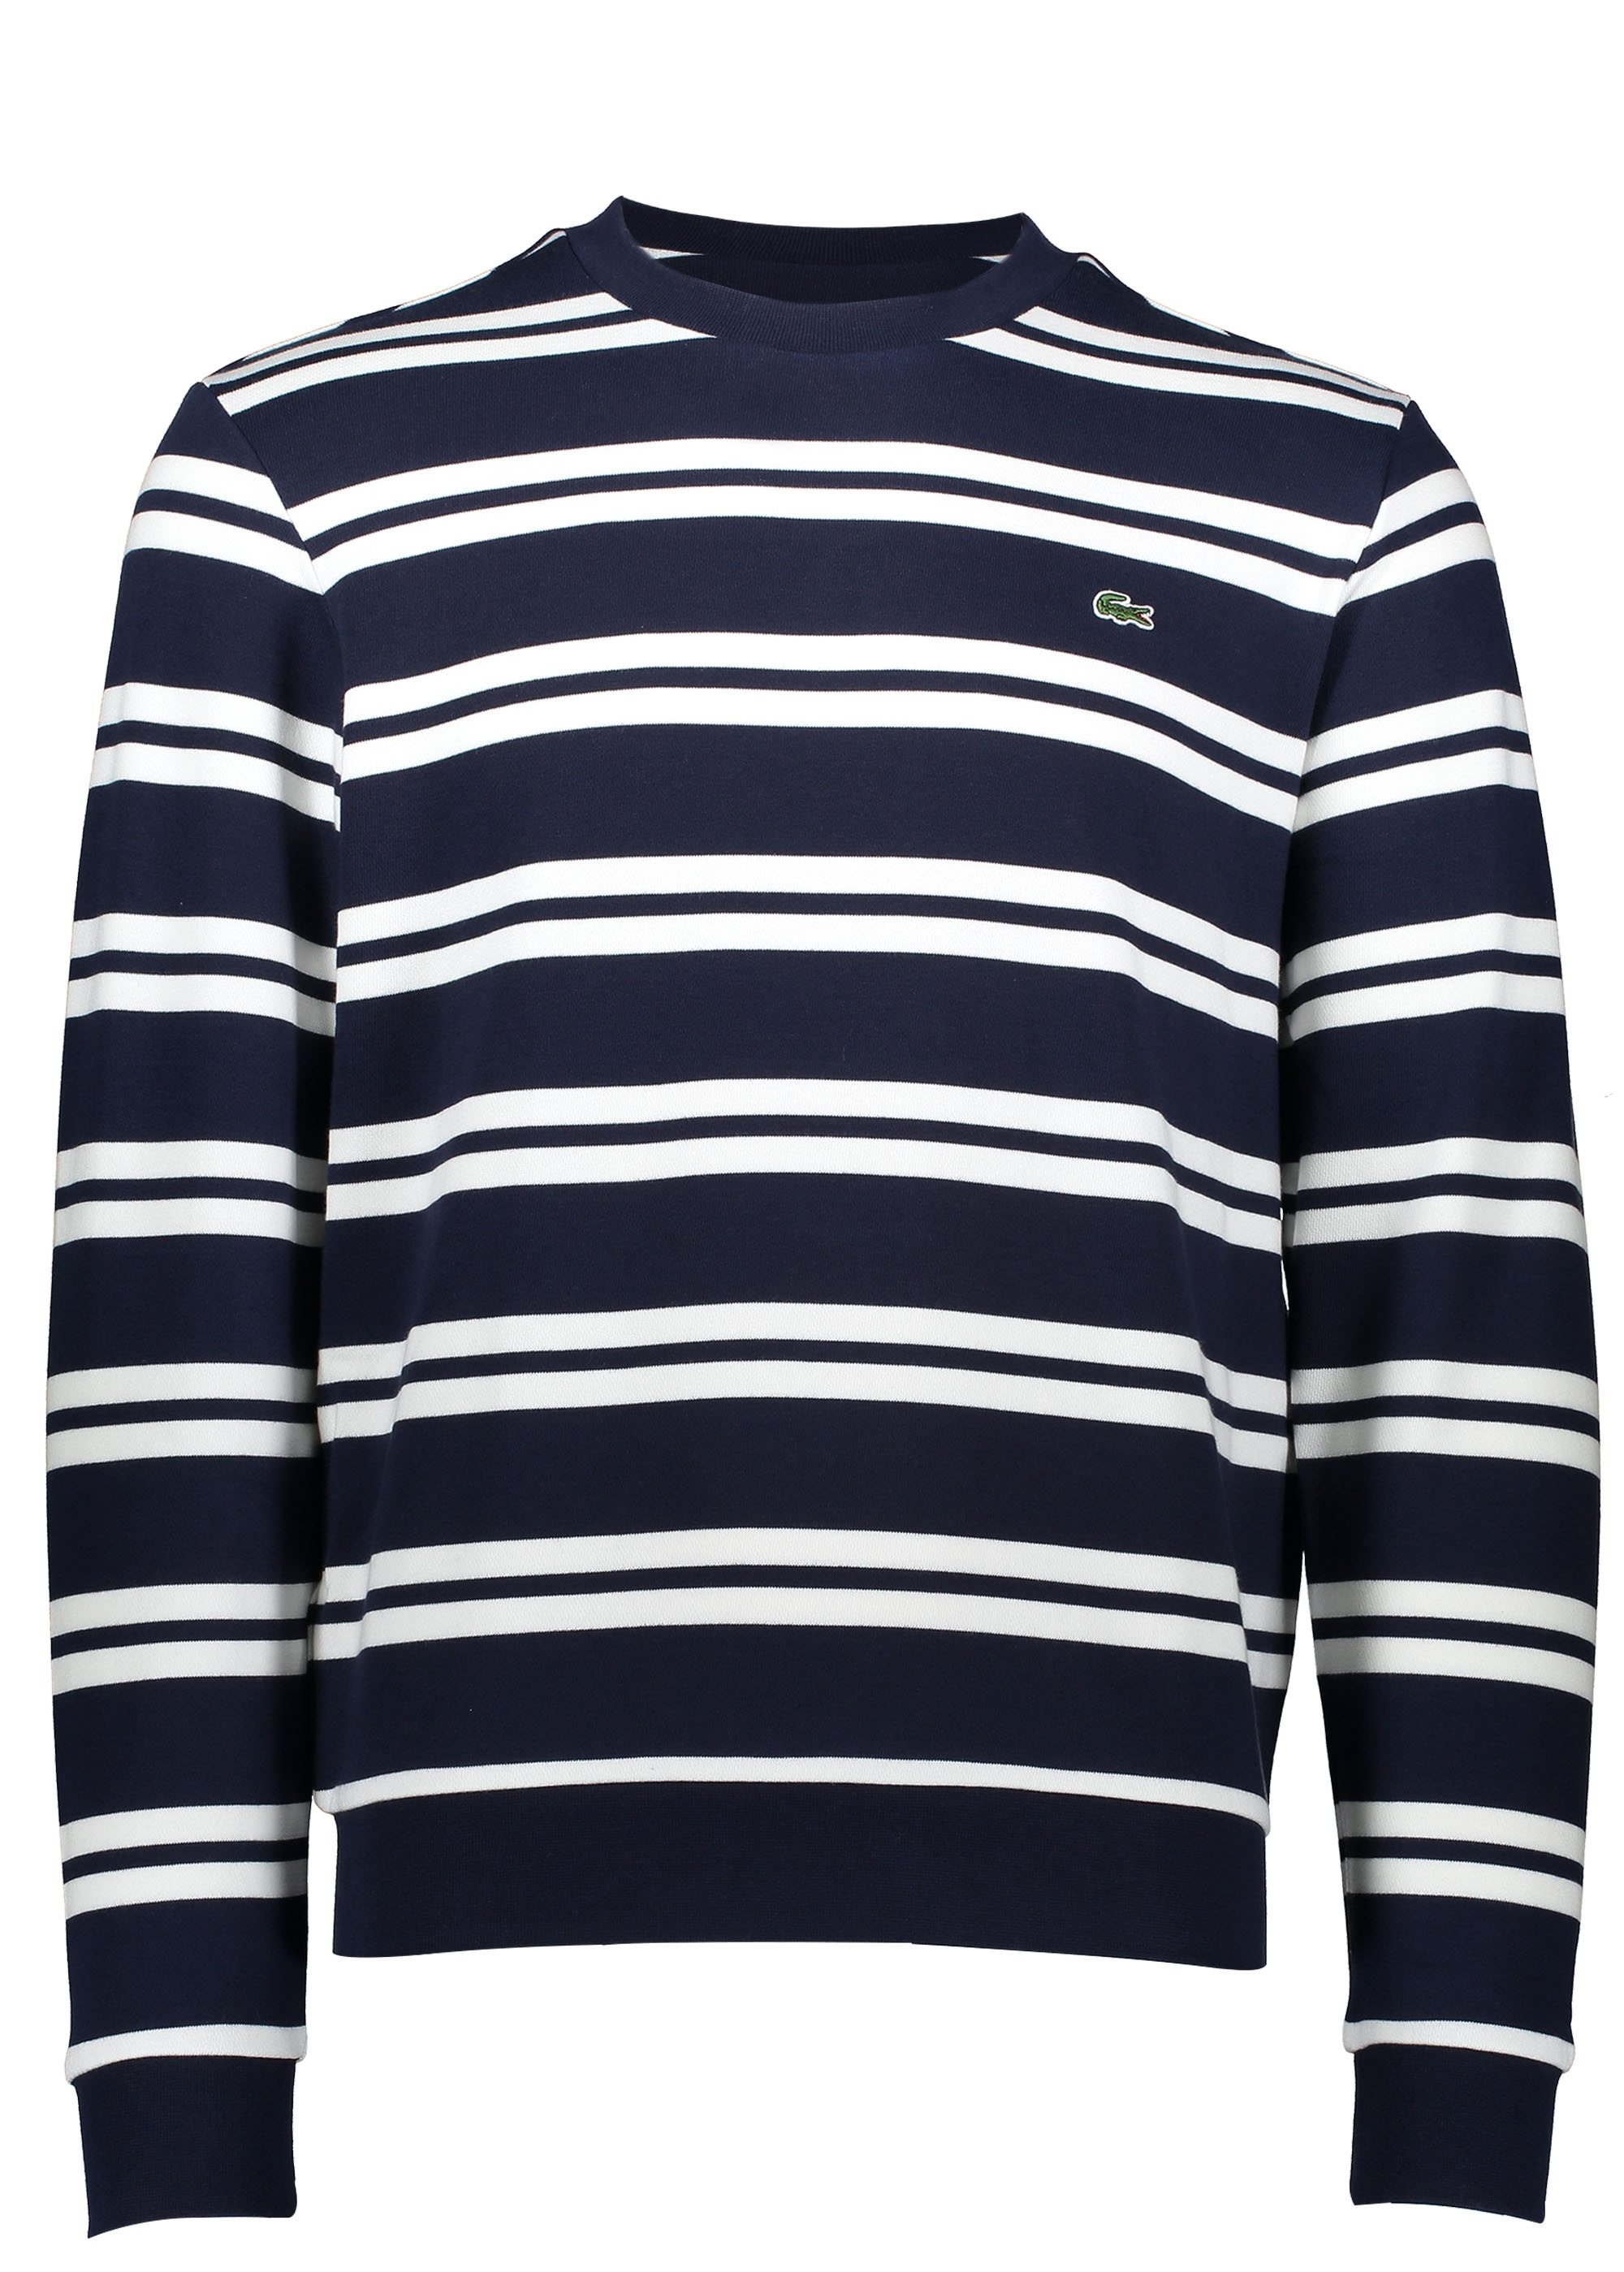 32e27c75 Lacoste Nautical Stripe Sweat - Navy Blue - Jumpers from Triads UK